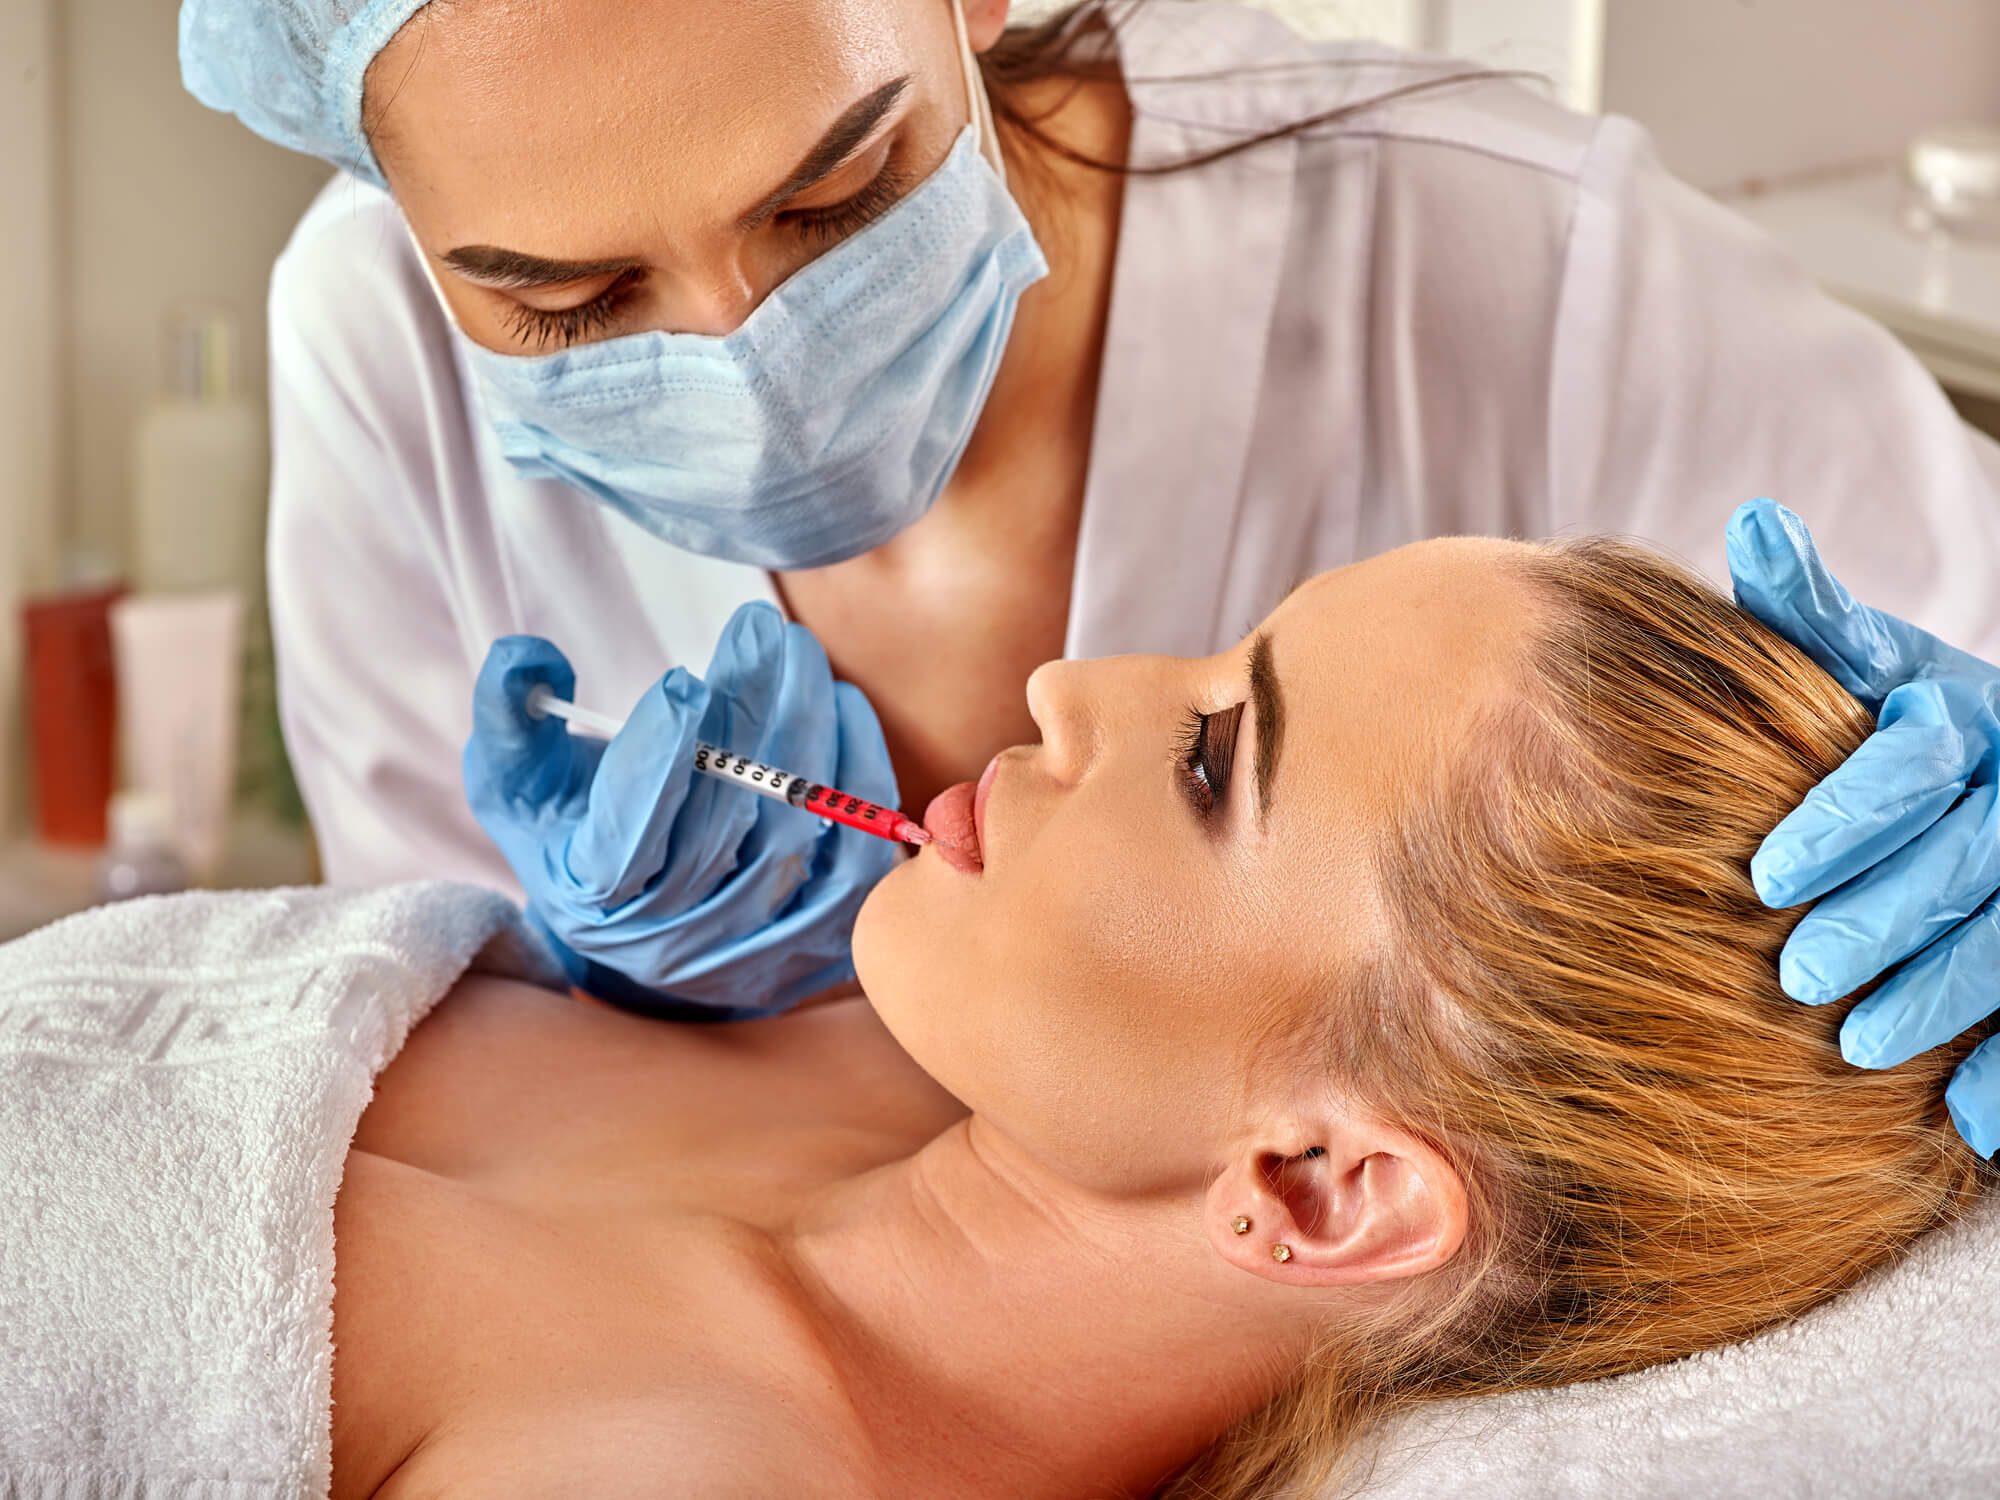 Where can I get Dermal Fillers Miami?